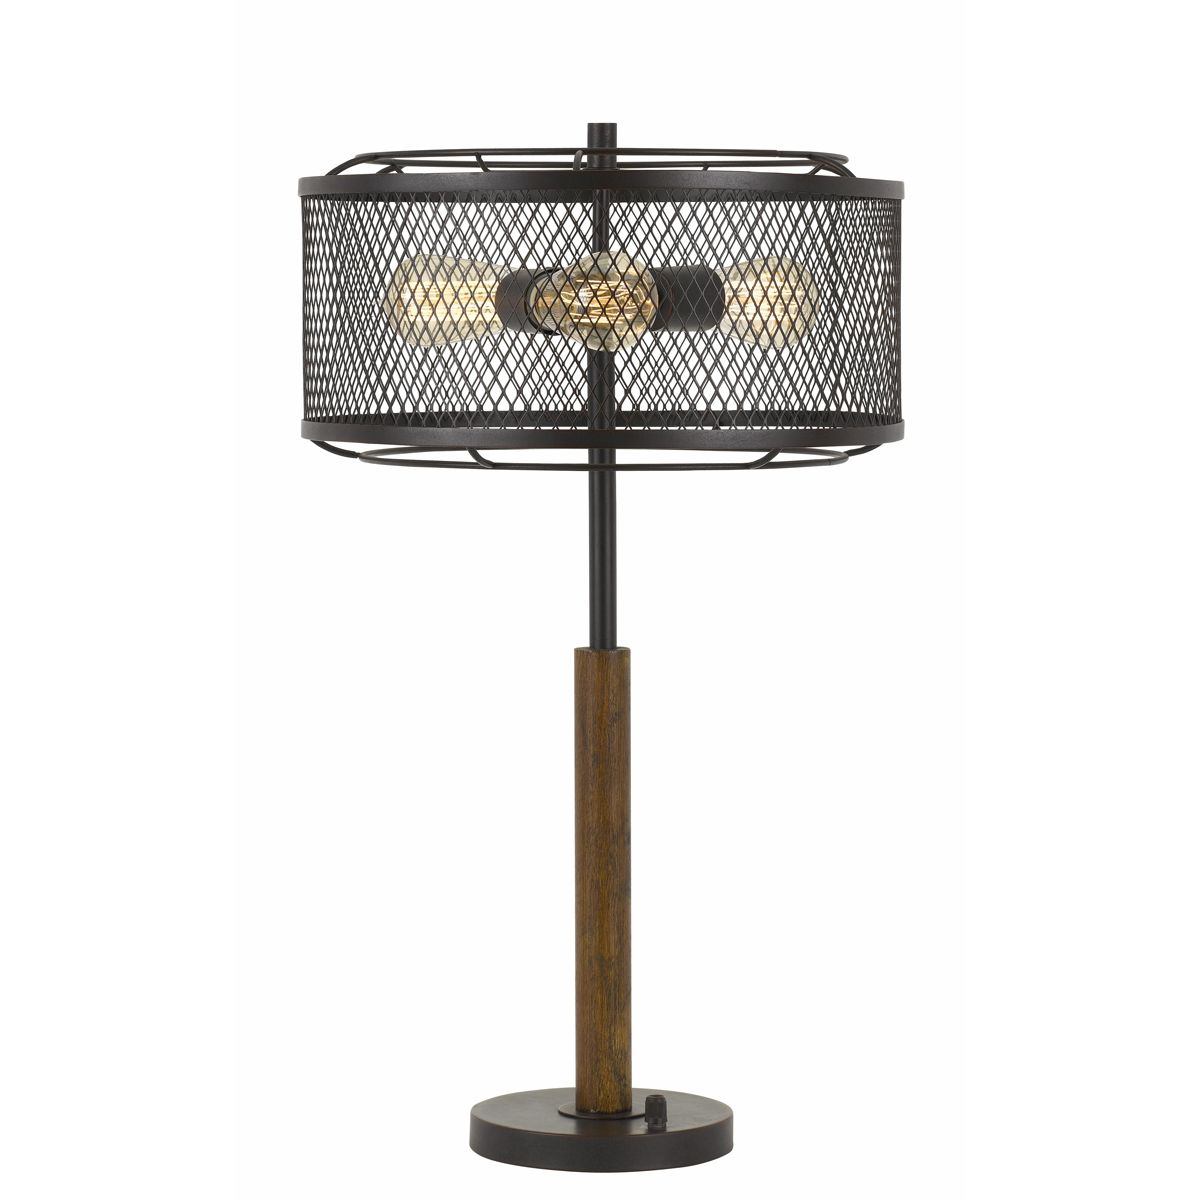 cal lighting casual dawson light table lamp dark accent bronze height wood finish acrylic side with shelf solid pine furniture bbq round coffee legs small black bedside french